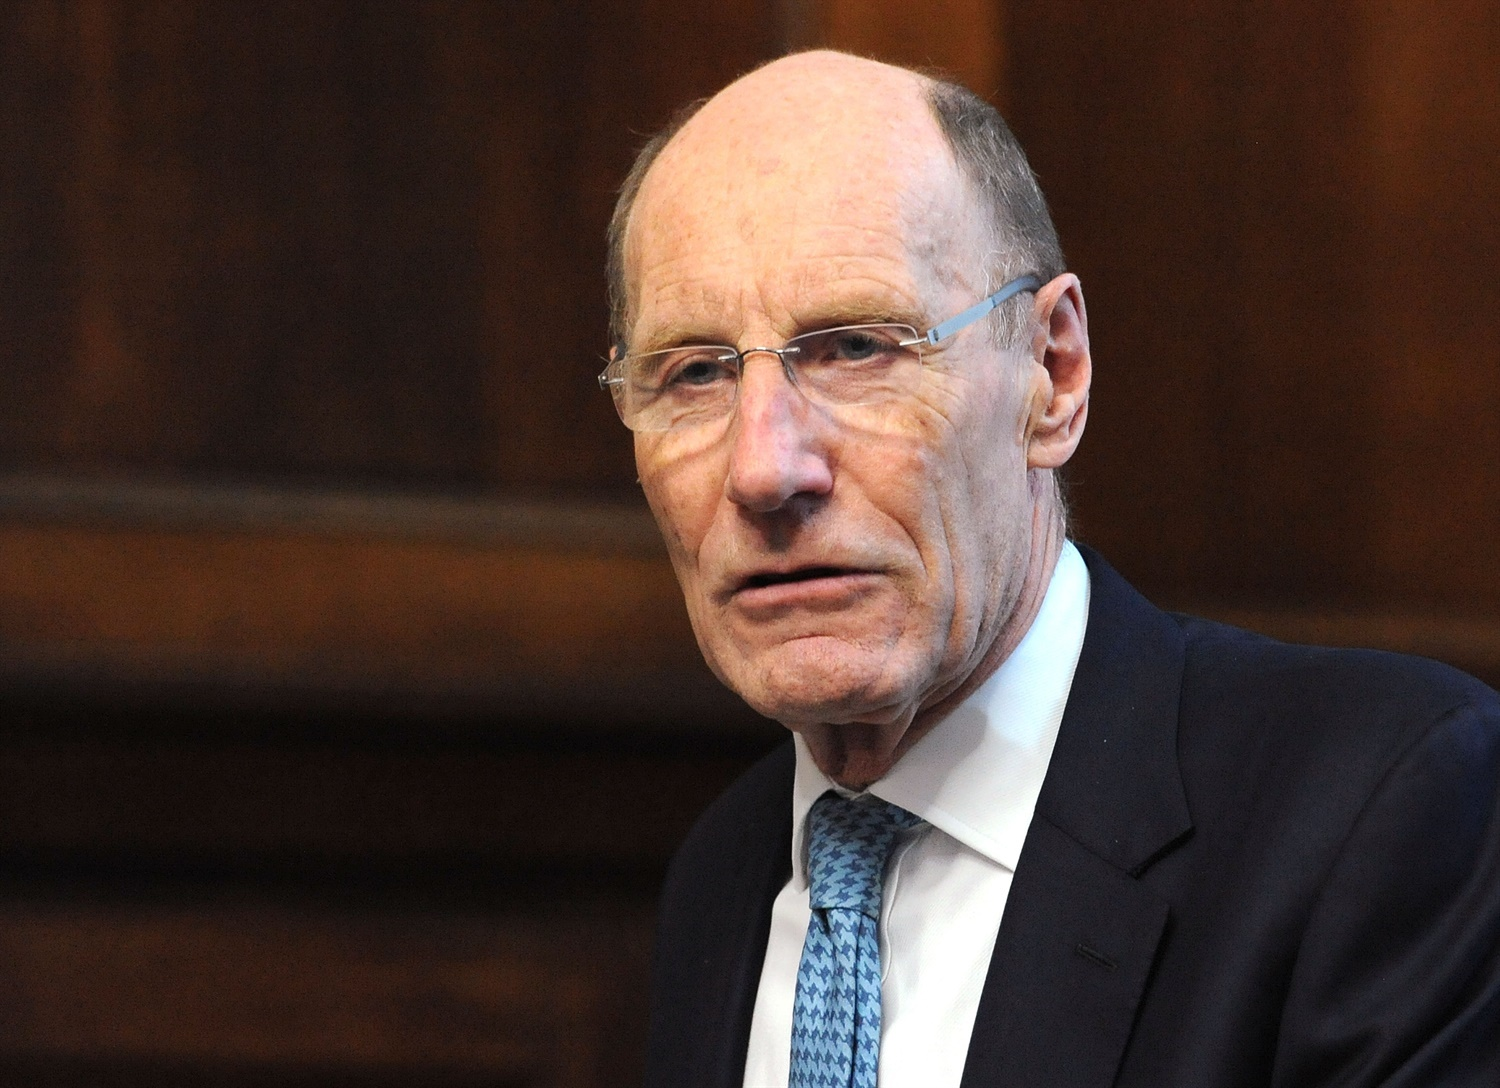 HS2 Phase 2 could be almost 30% cheaper, Armitt's PwC review finds